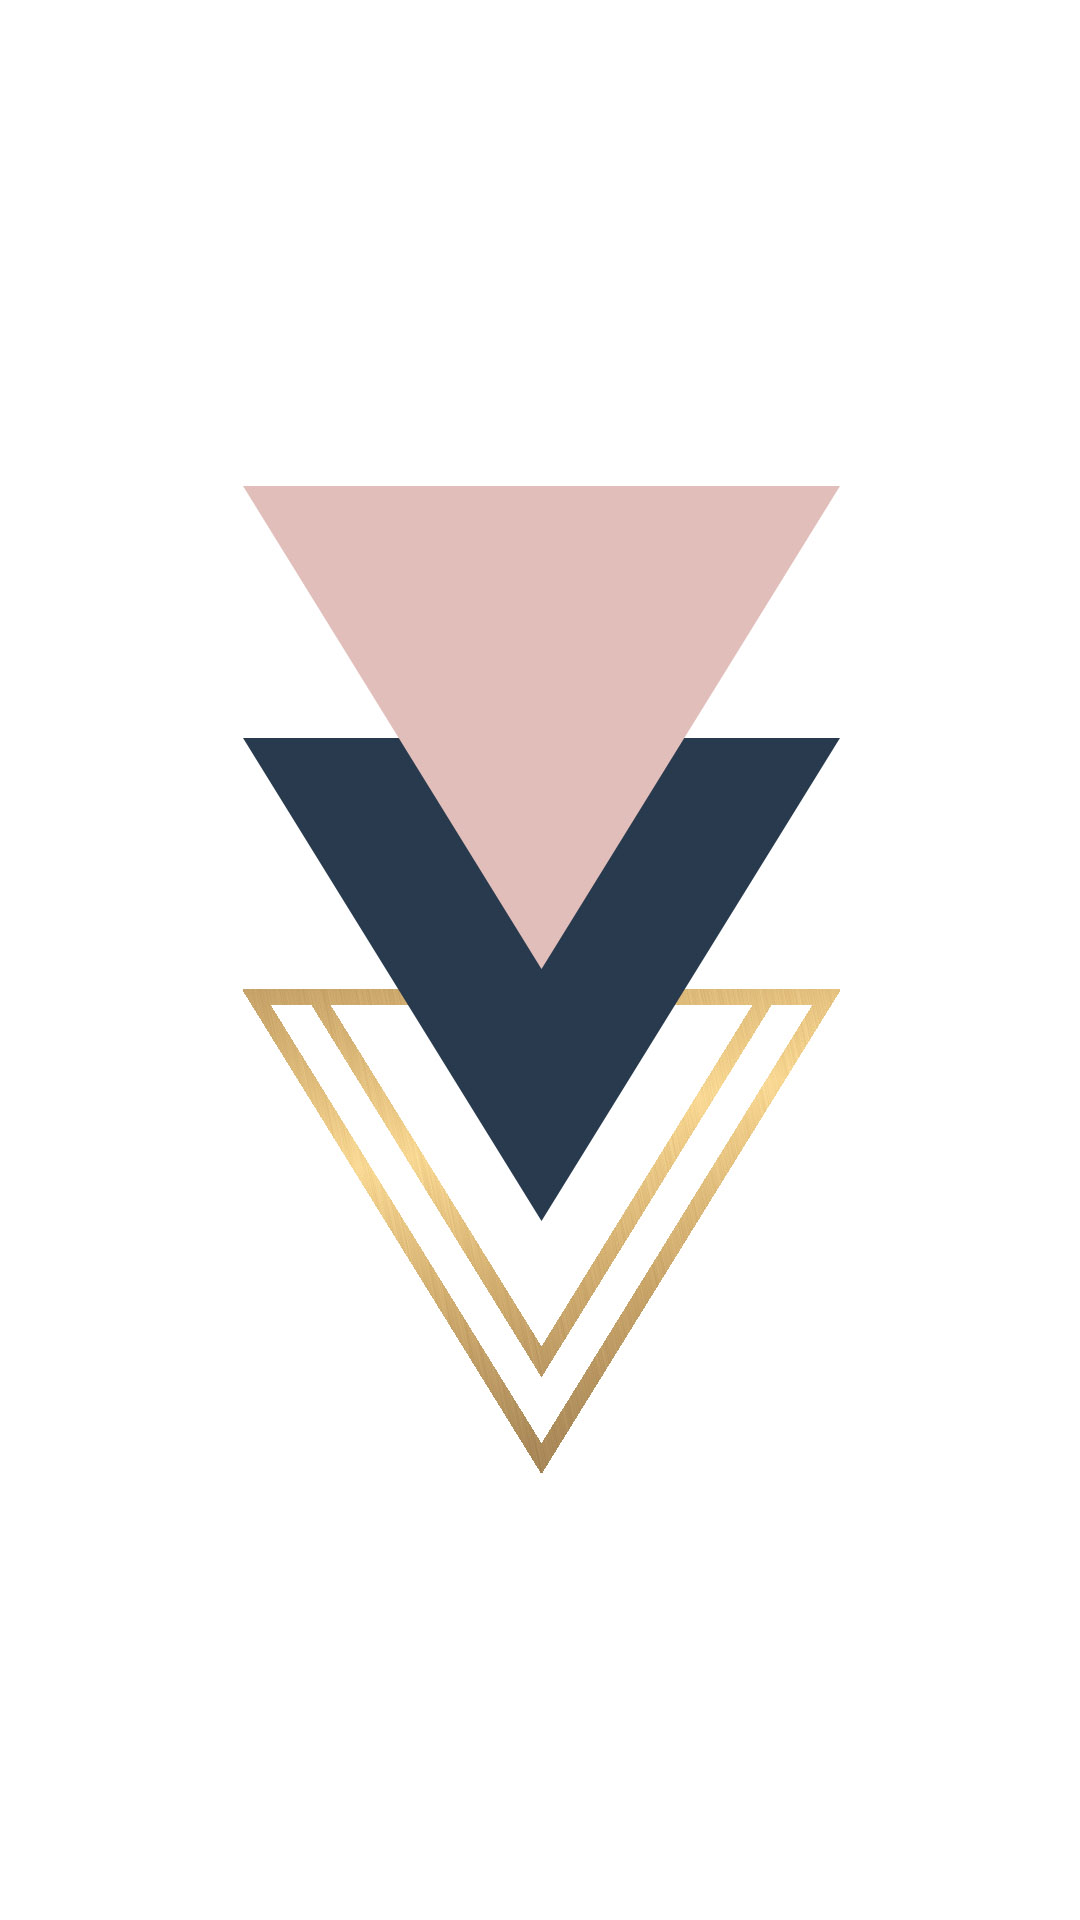 Blush-Navy-gold-foil-triangle-geo-shapes-you-can-download-for-free-on-the-blog-For-any-de-wallpaper-wpc5802945